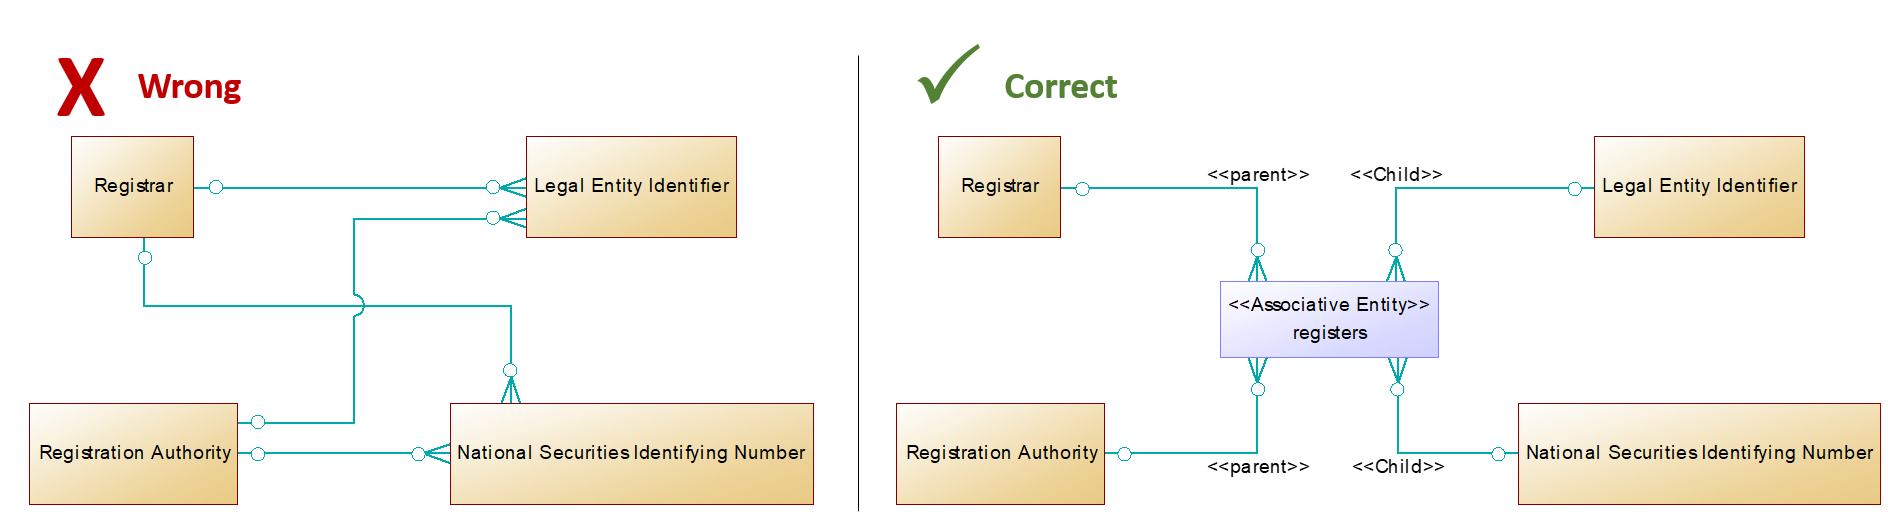 A side-by-side view of the correct and erroneous modeling of Registration Authorities and Objects,